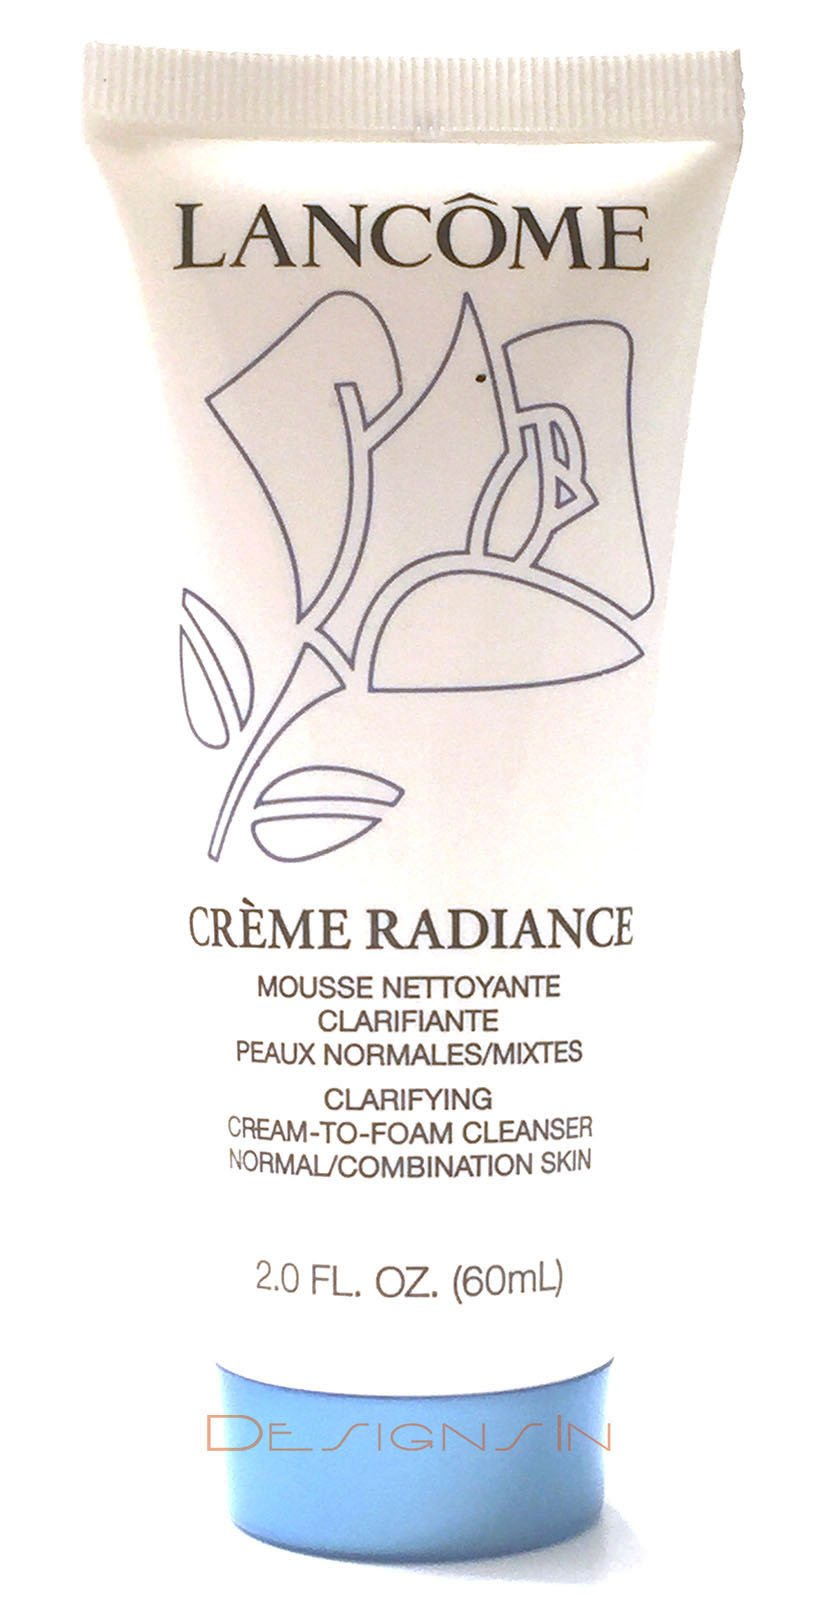 Bi-Facil and Crème Radiance Cleansing and Clarifying Duo by Lancôme #5